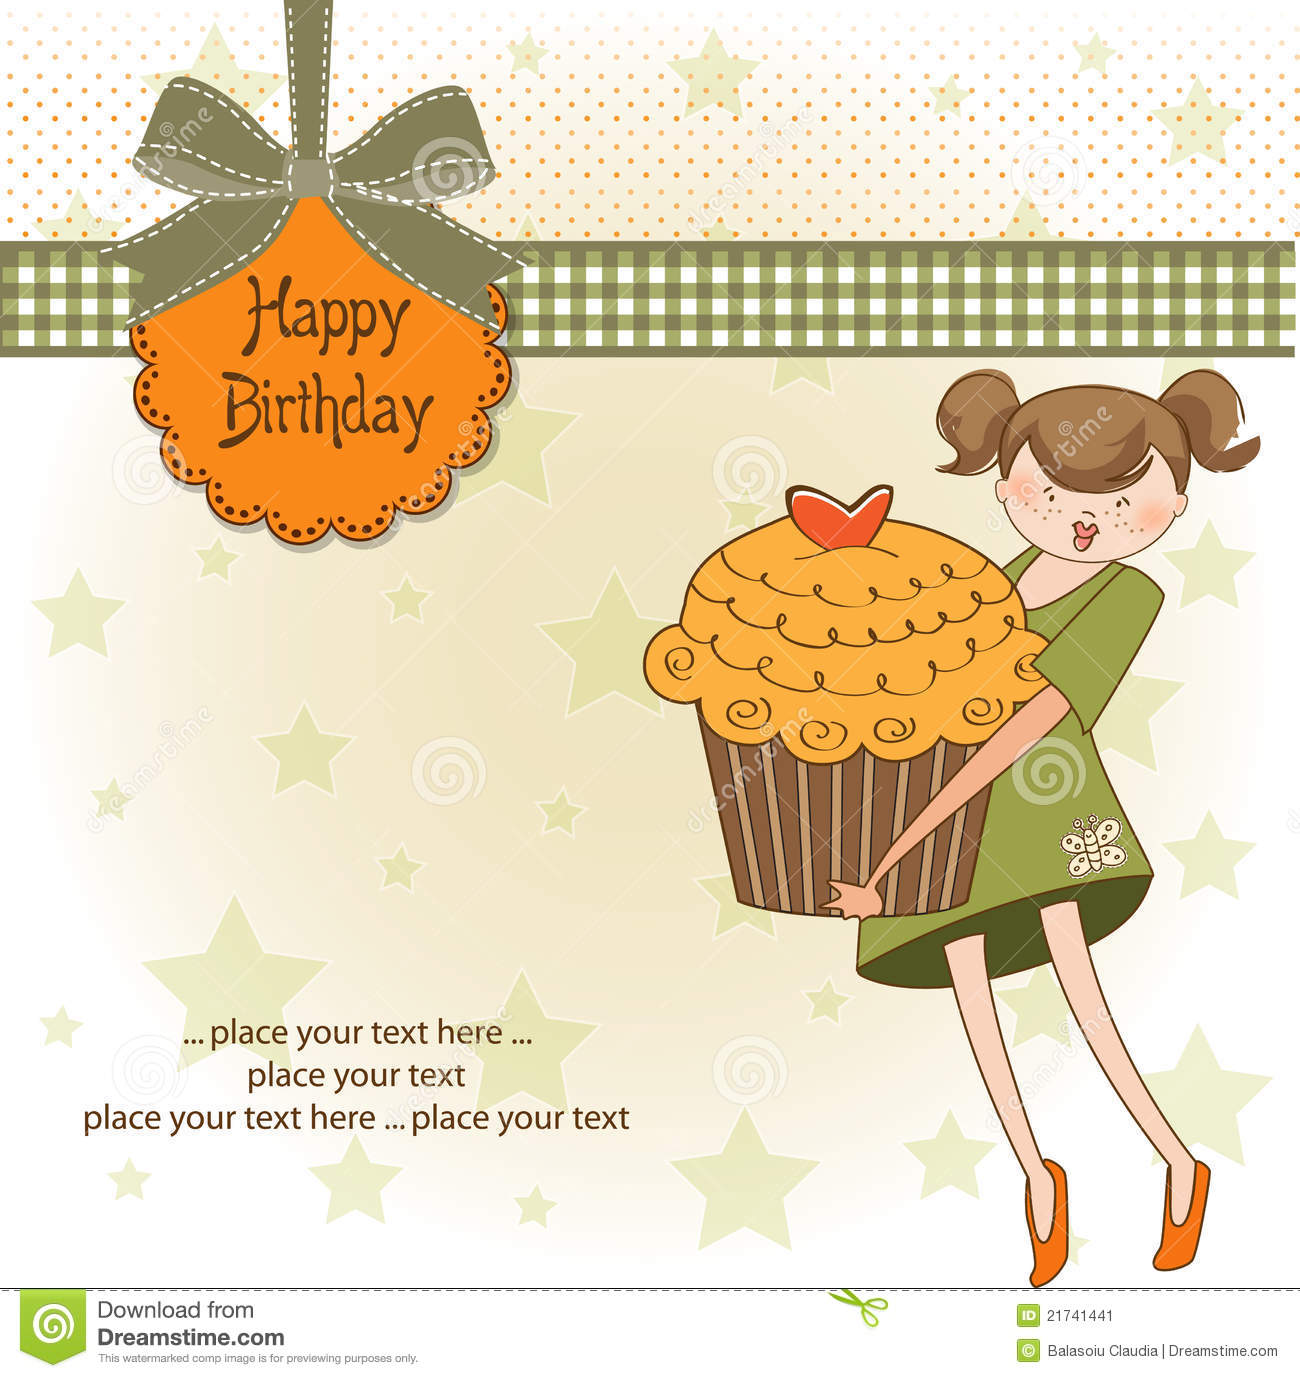 Happy Birthday Card With Girl And Cupcake Image Image – Birthday Cards for Girl